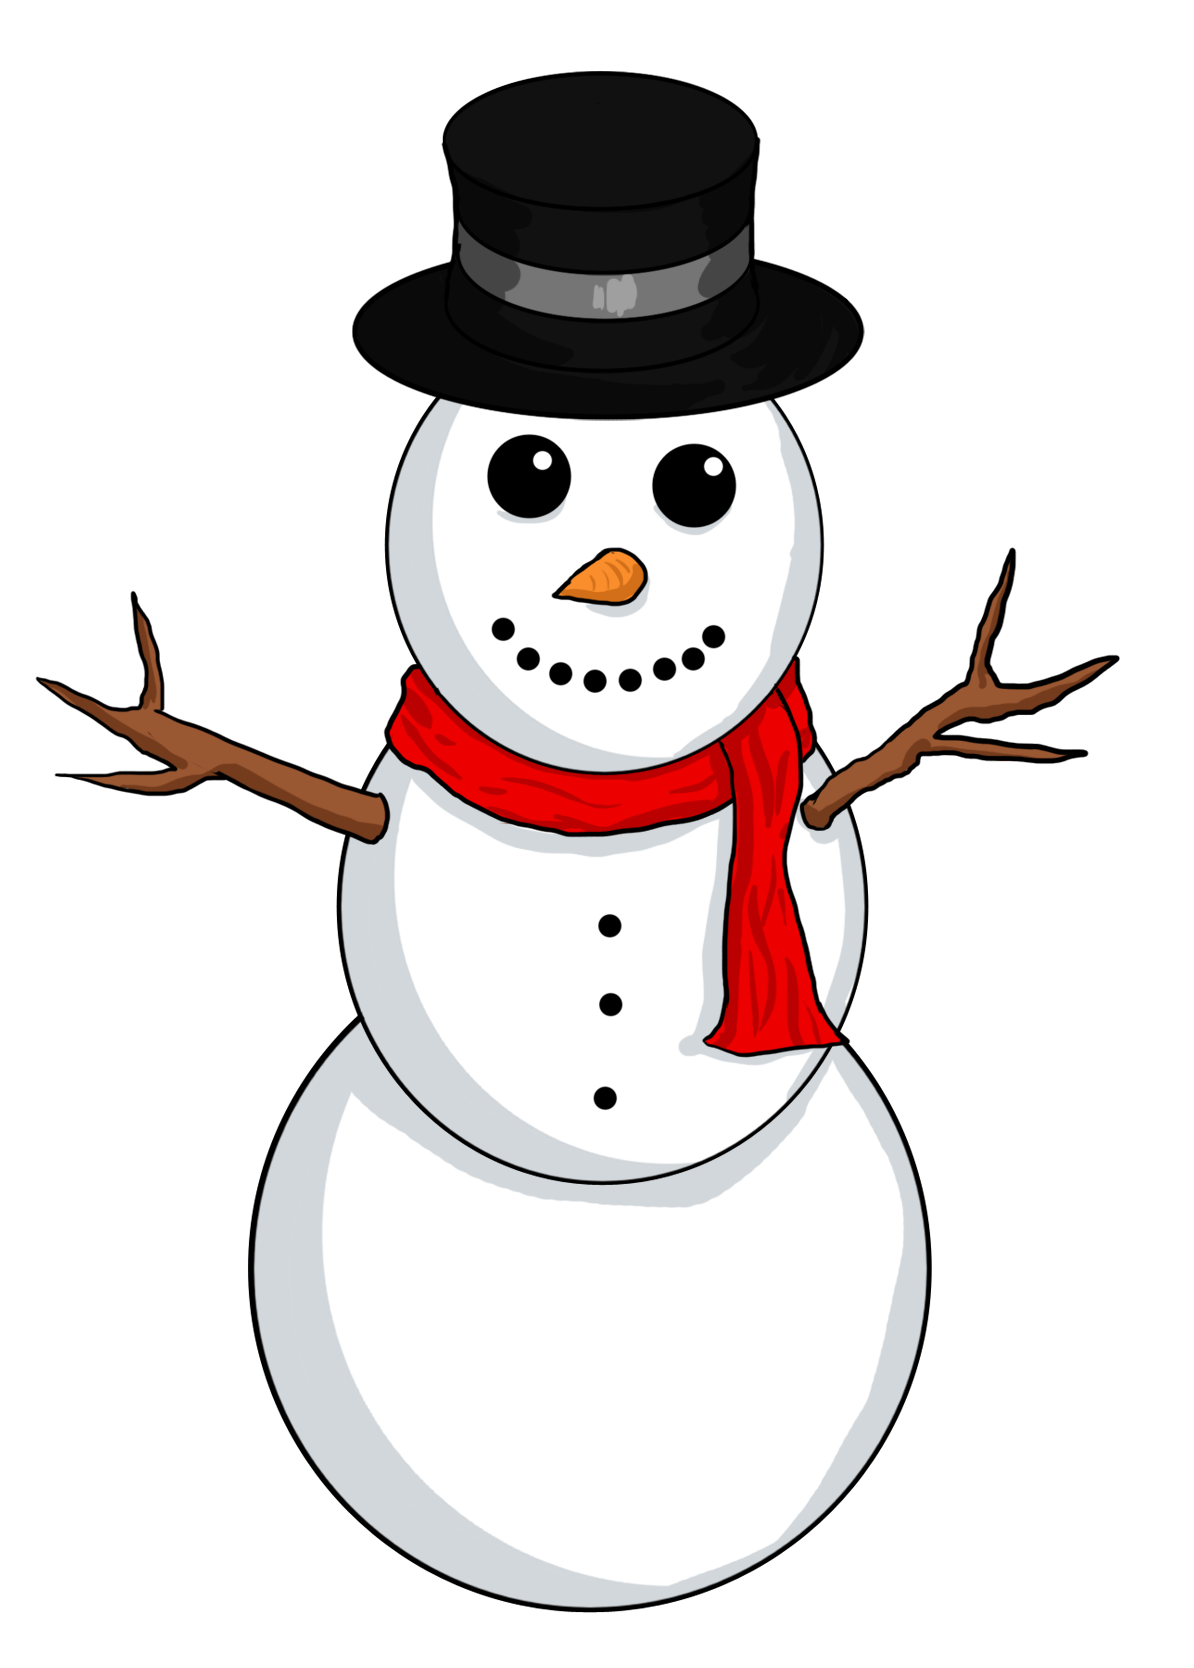 Transparent arms snowman stick. Shoveling tales from a